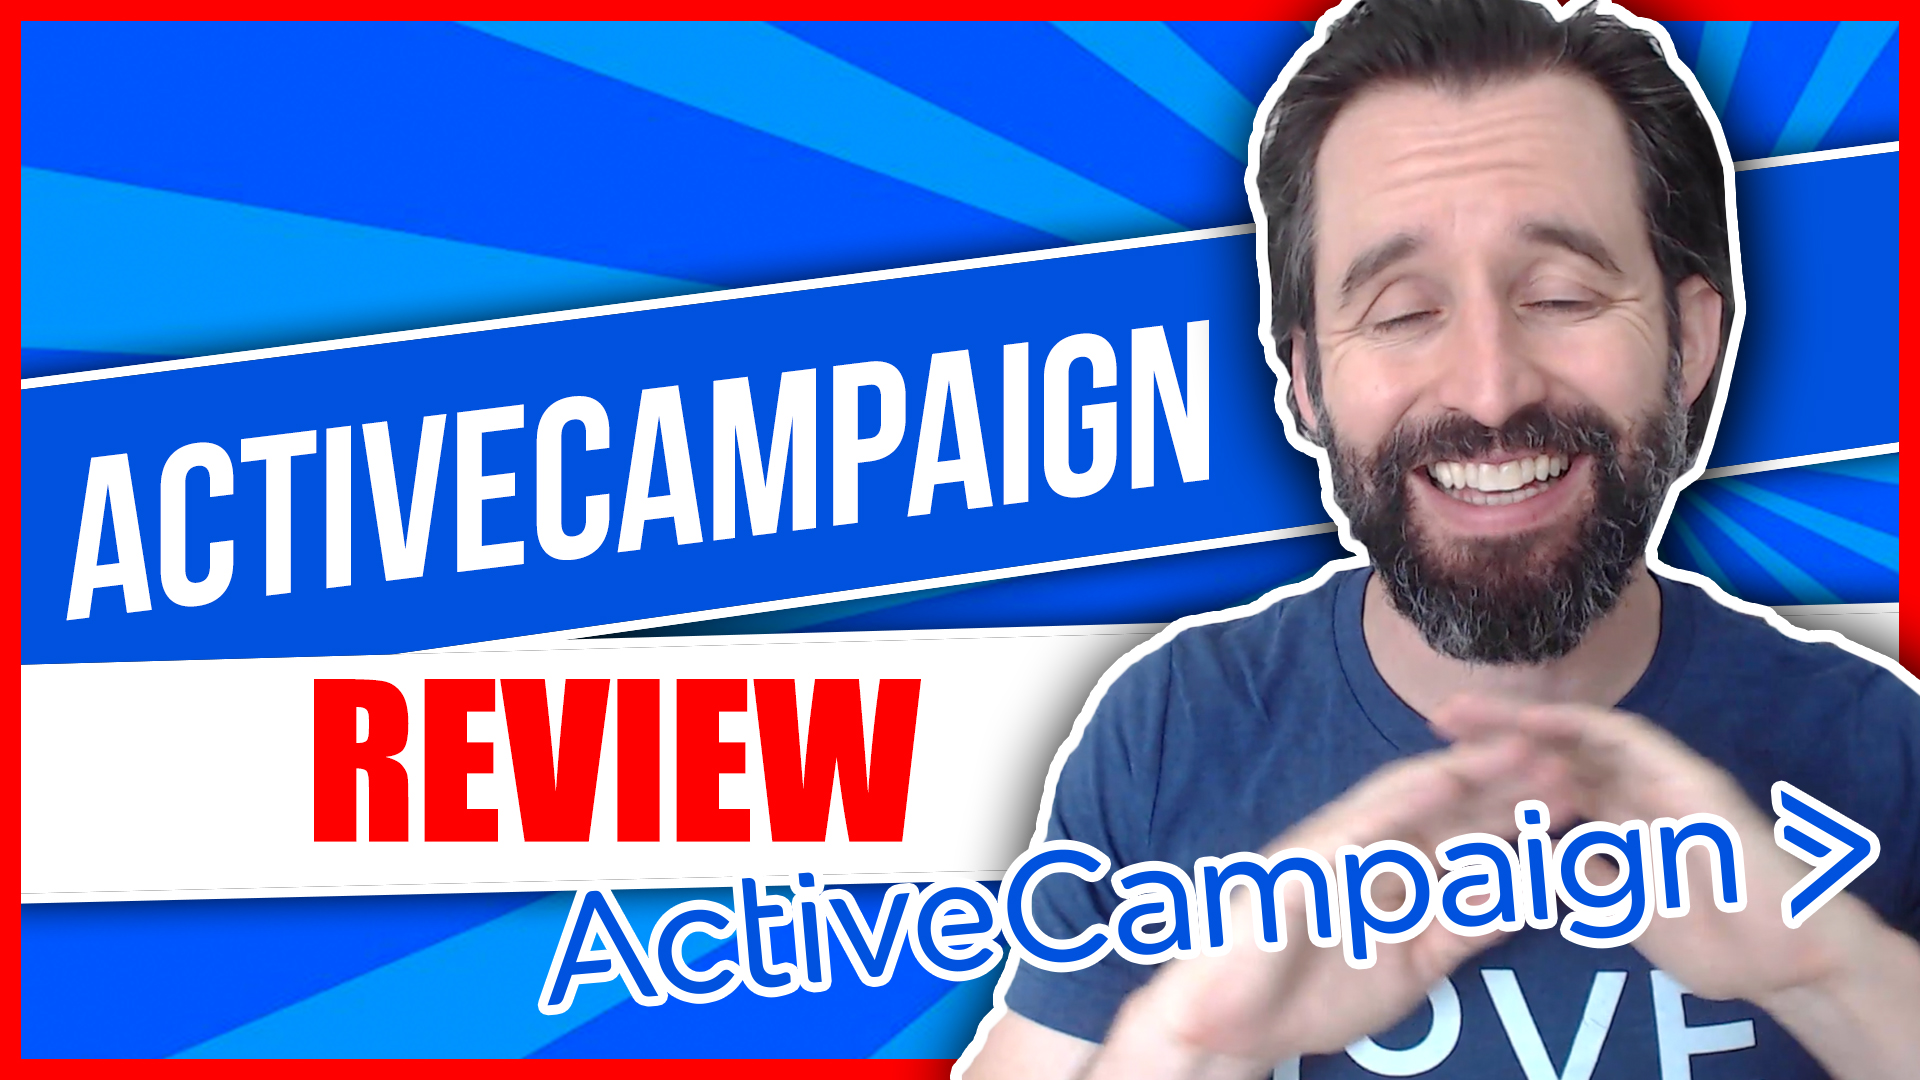 Benefits Of Using Active Campaign